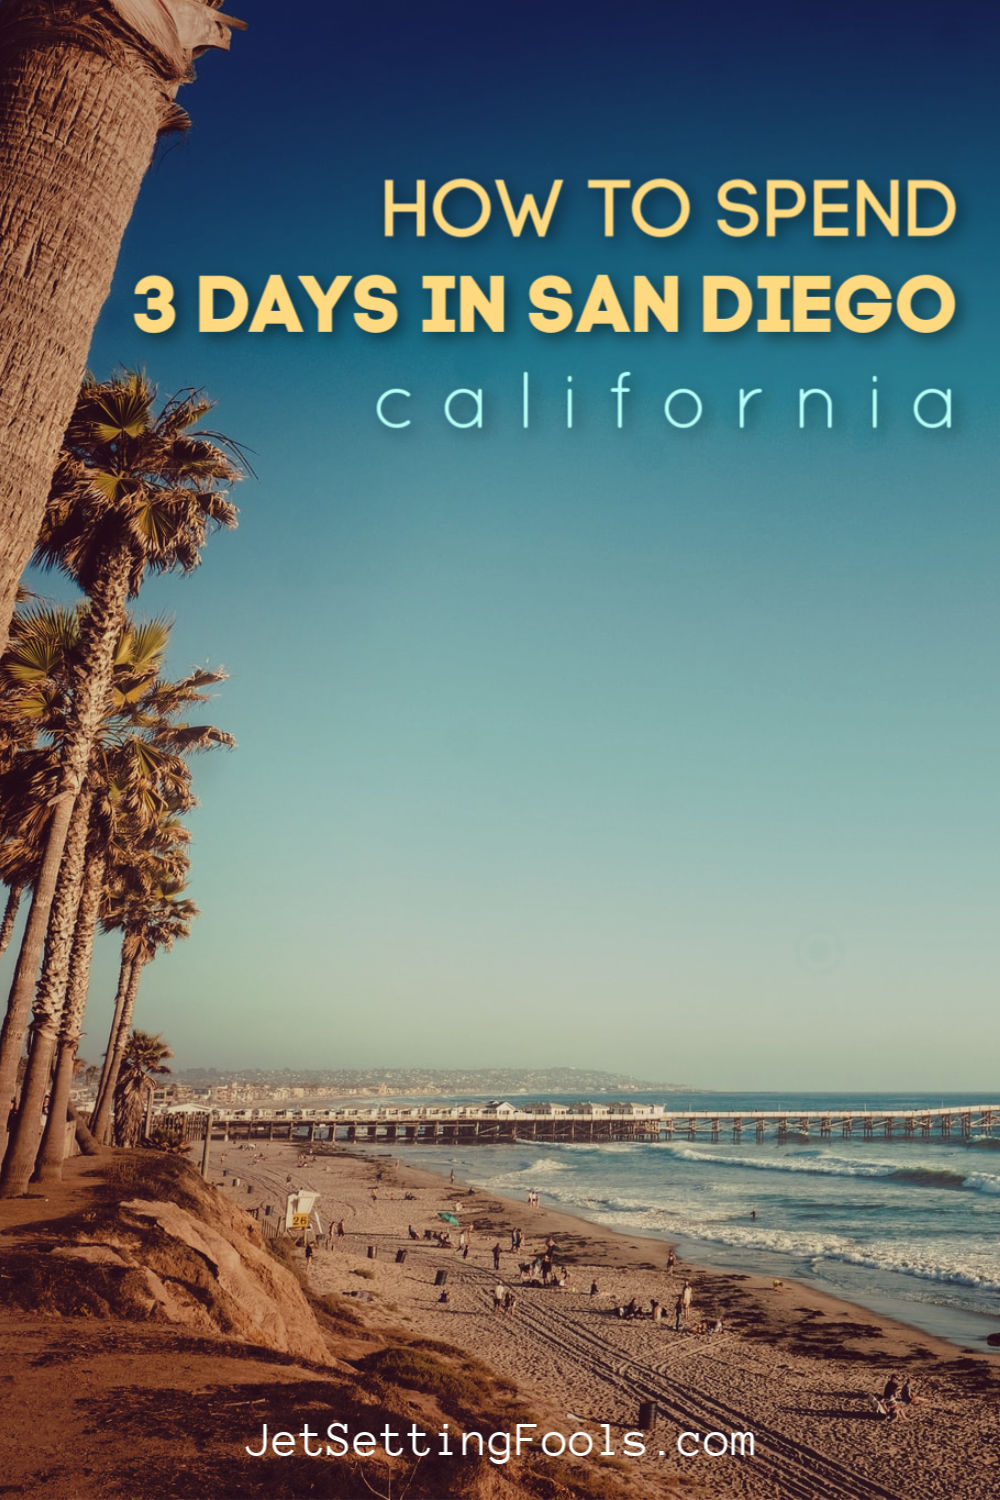 How To Spend 3 Days in San Diego, CA by JetSettingFools.com